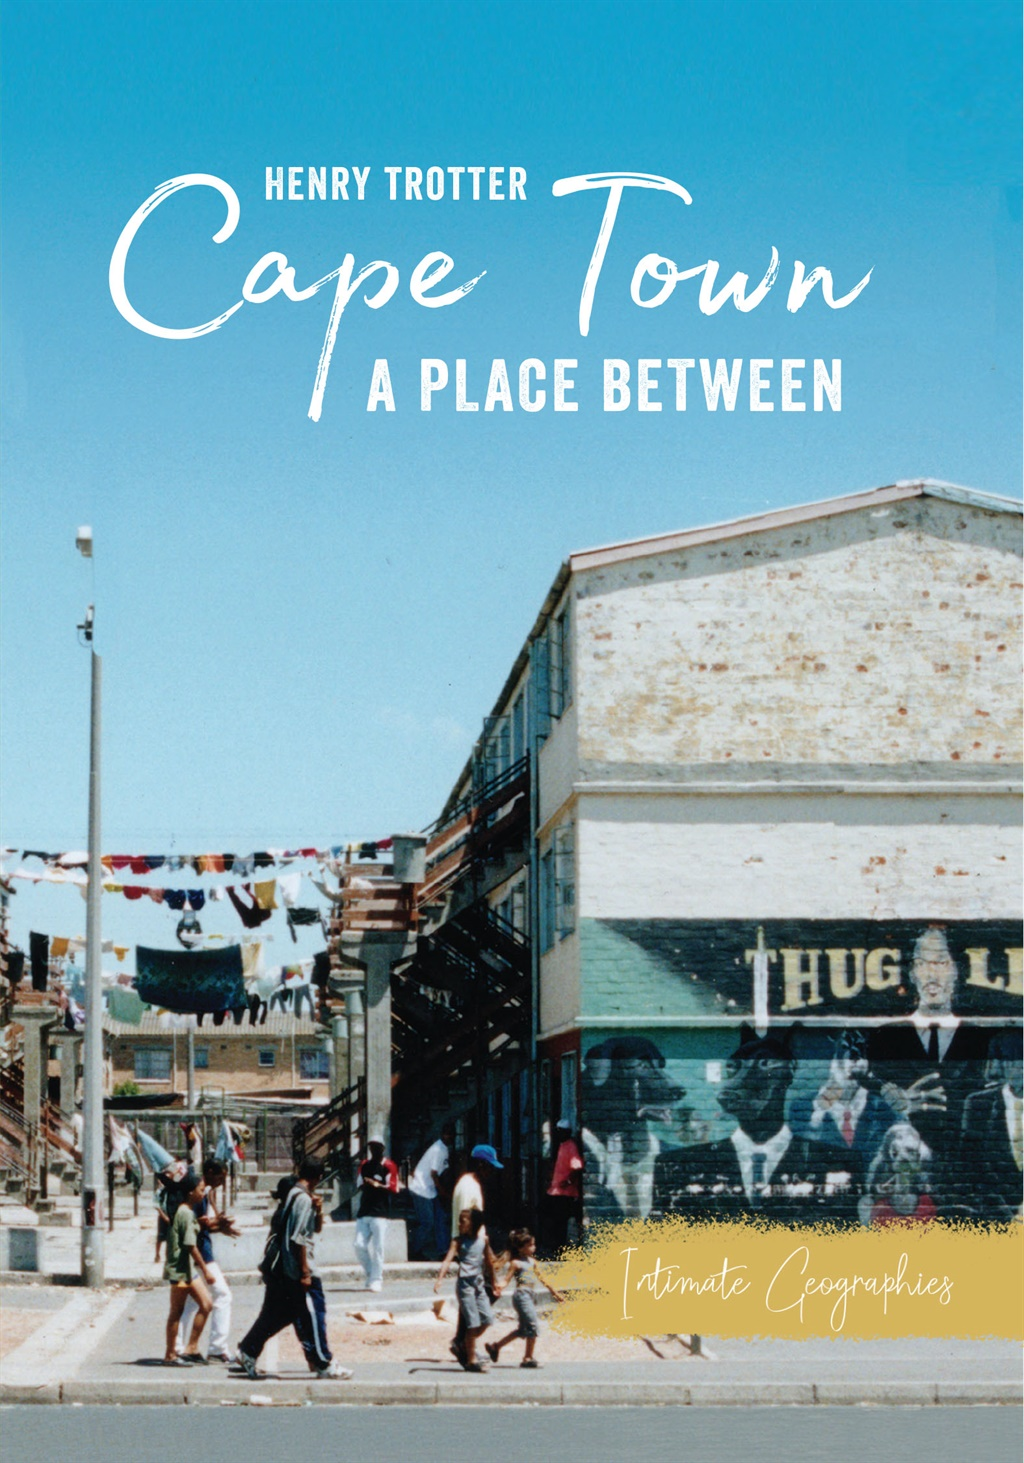 Cape Town: A Place Between by Henry Trotter, published by Catalyst Press.